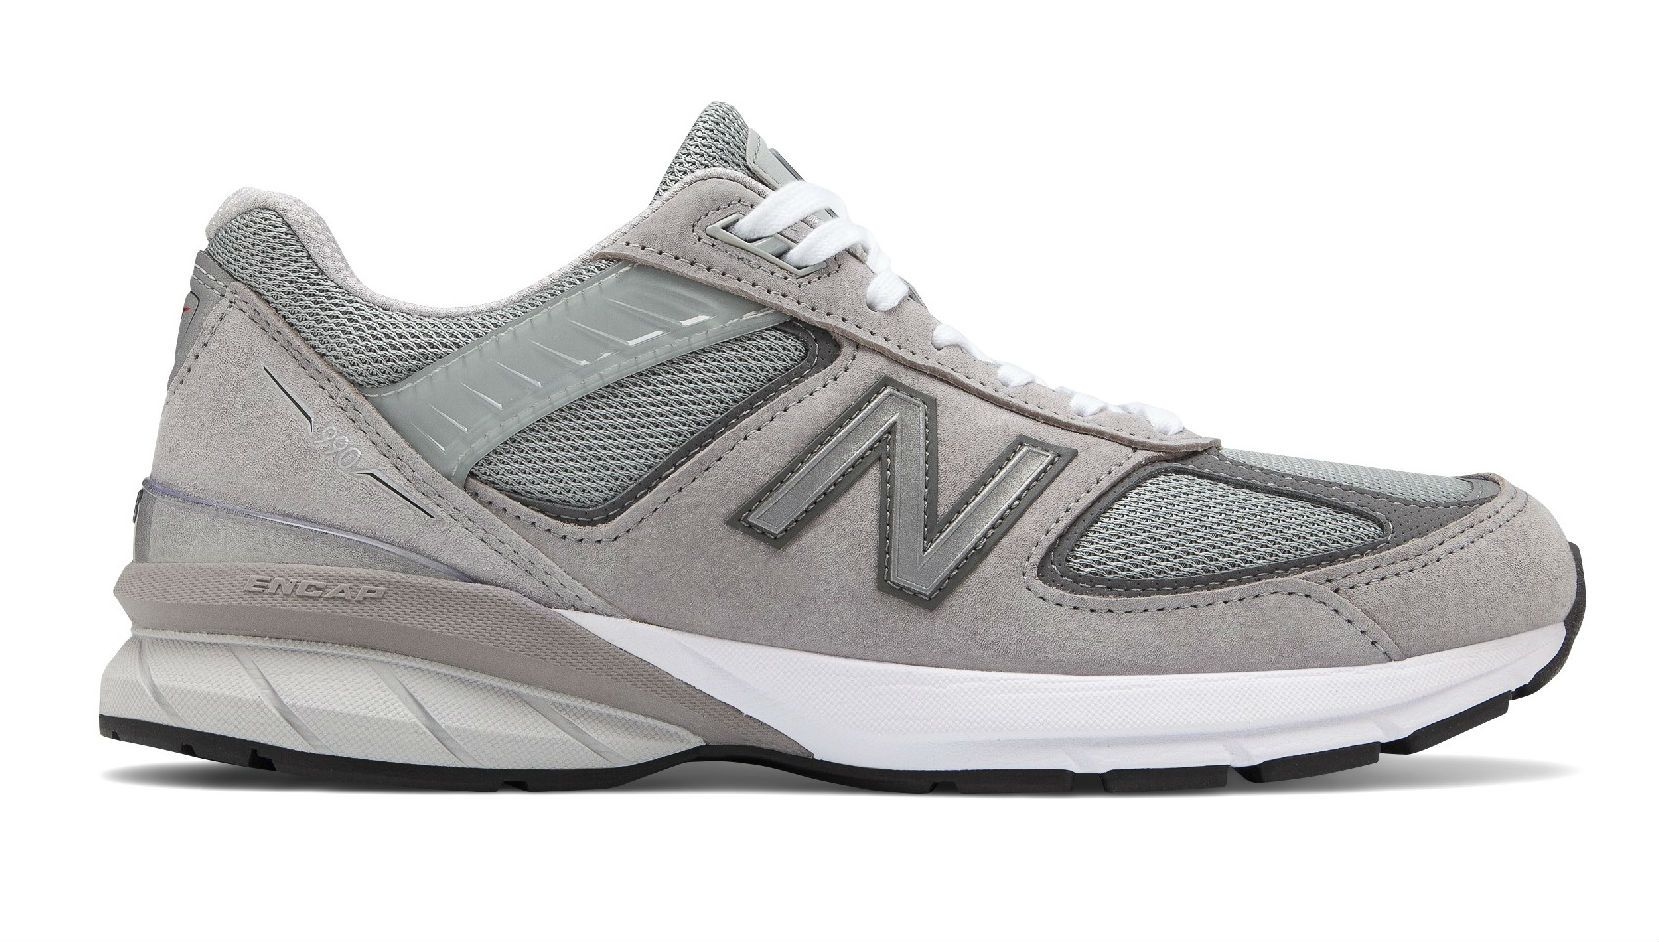 online store 7d8c7 b548f New Balance 990v4 Made in the USA